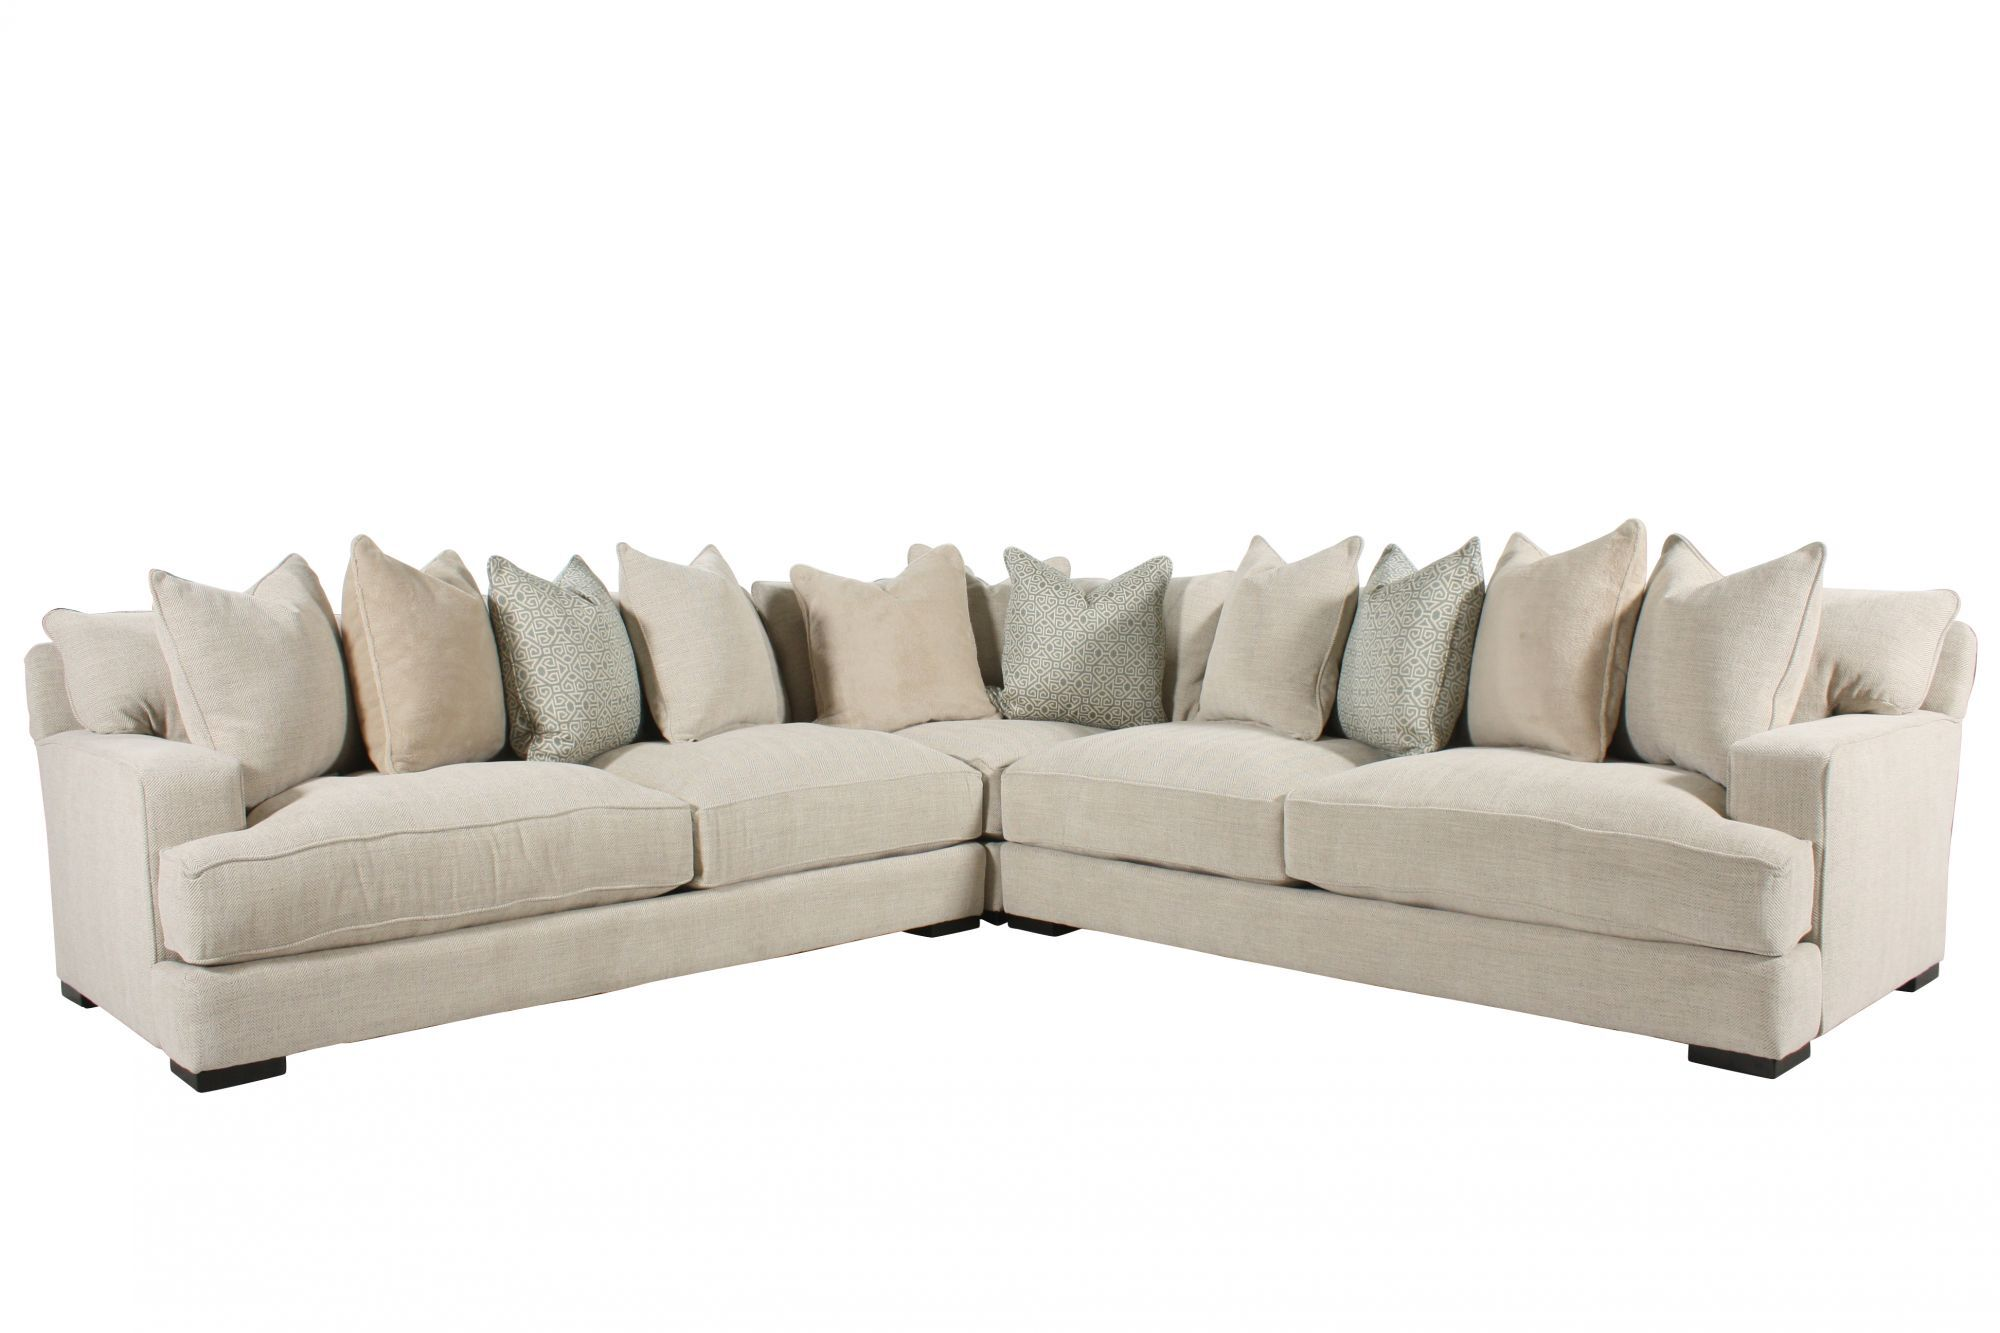 jonathan louis benjamin sectional sofa leather set online lewis or